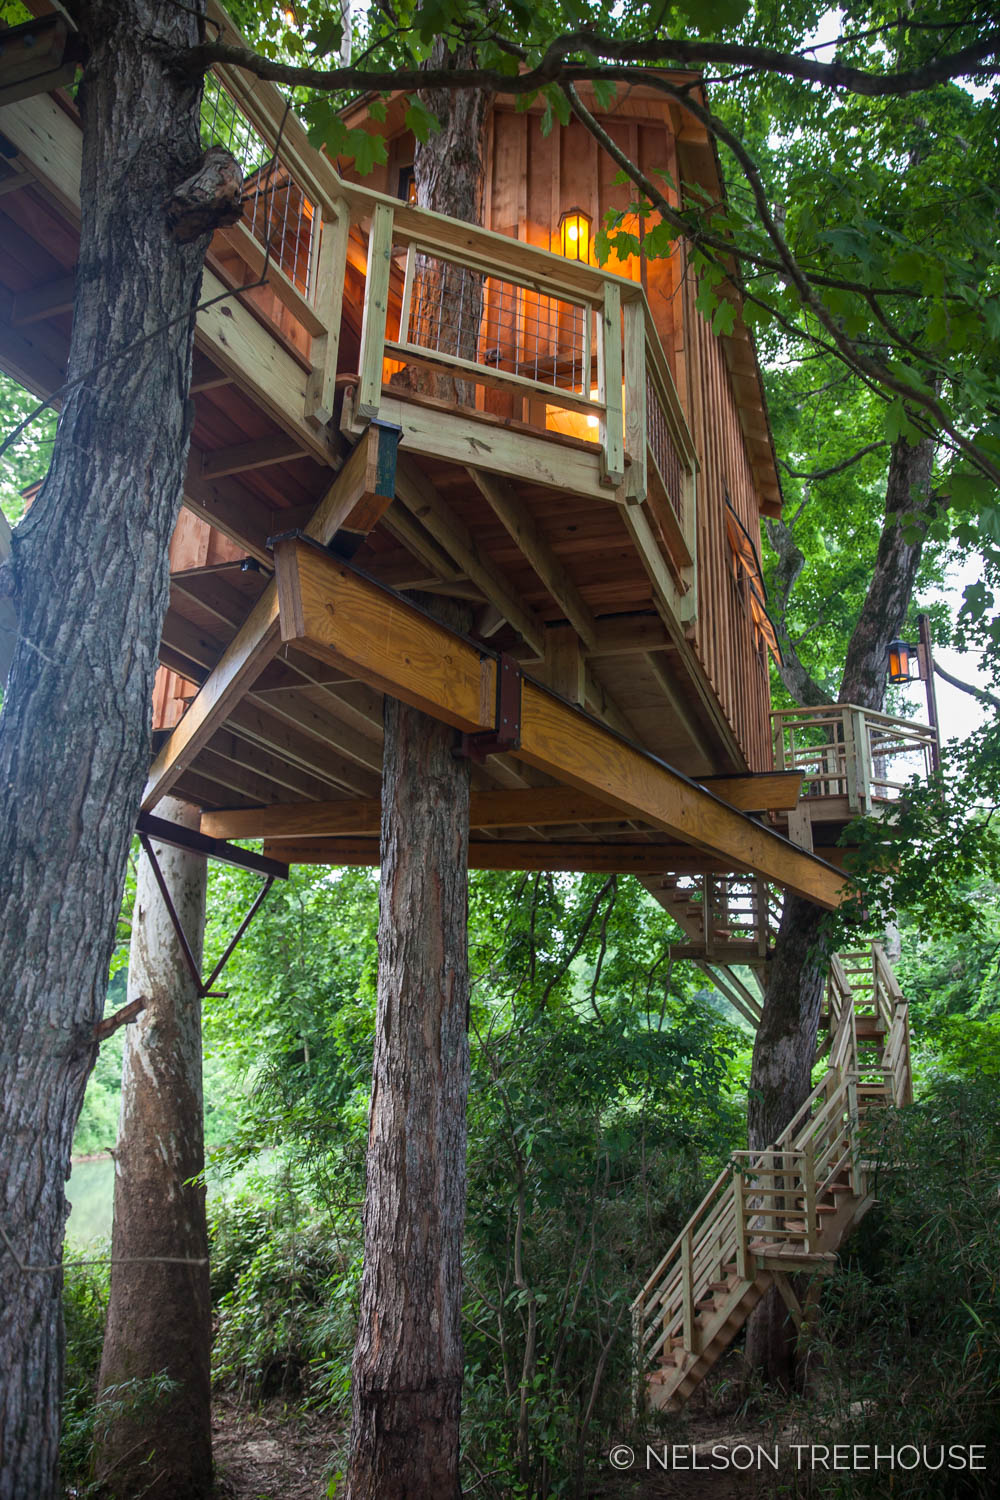 TenNessee Riverbank Treehouse Trees